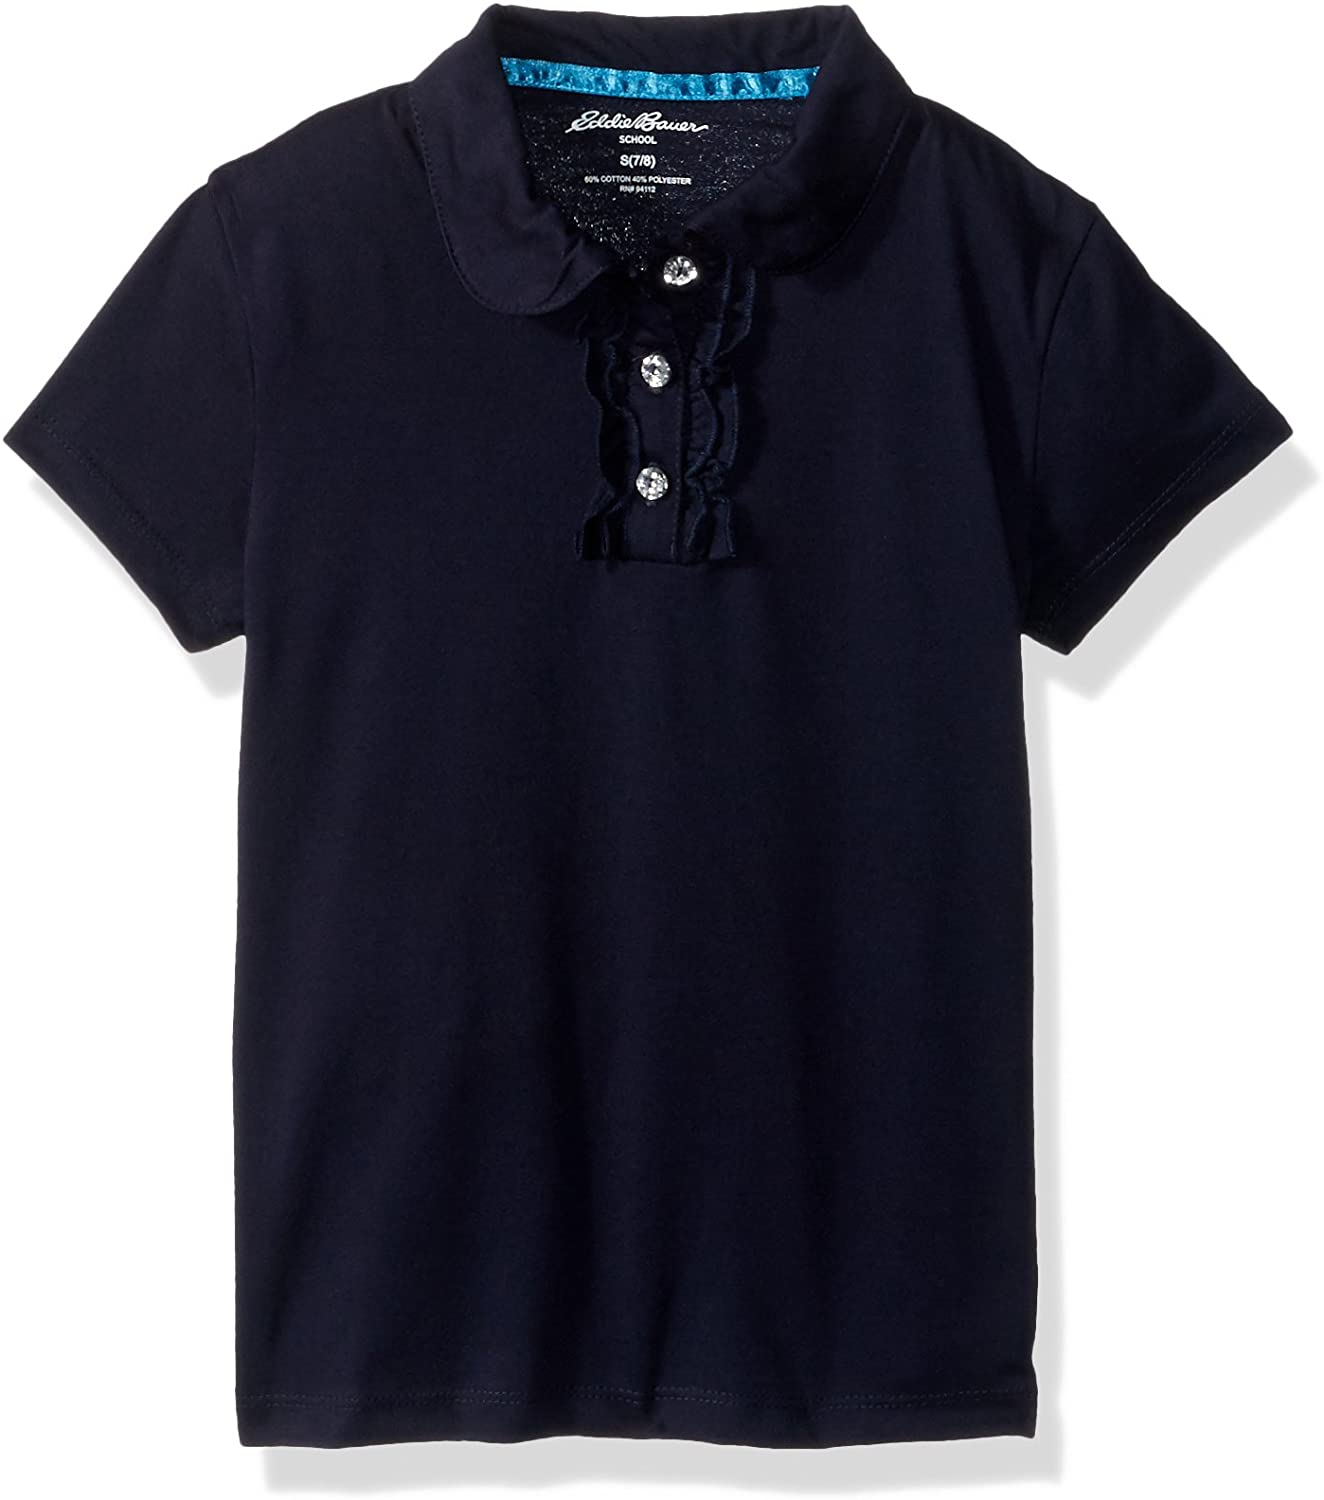 Eddie Bauer Girls' Short Sleeve Jersey Polo Shirt (More Styles Available)